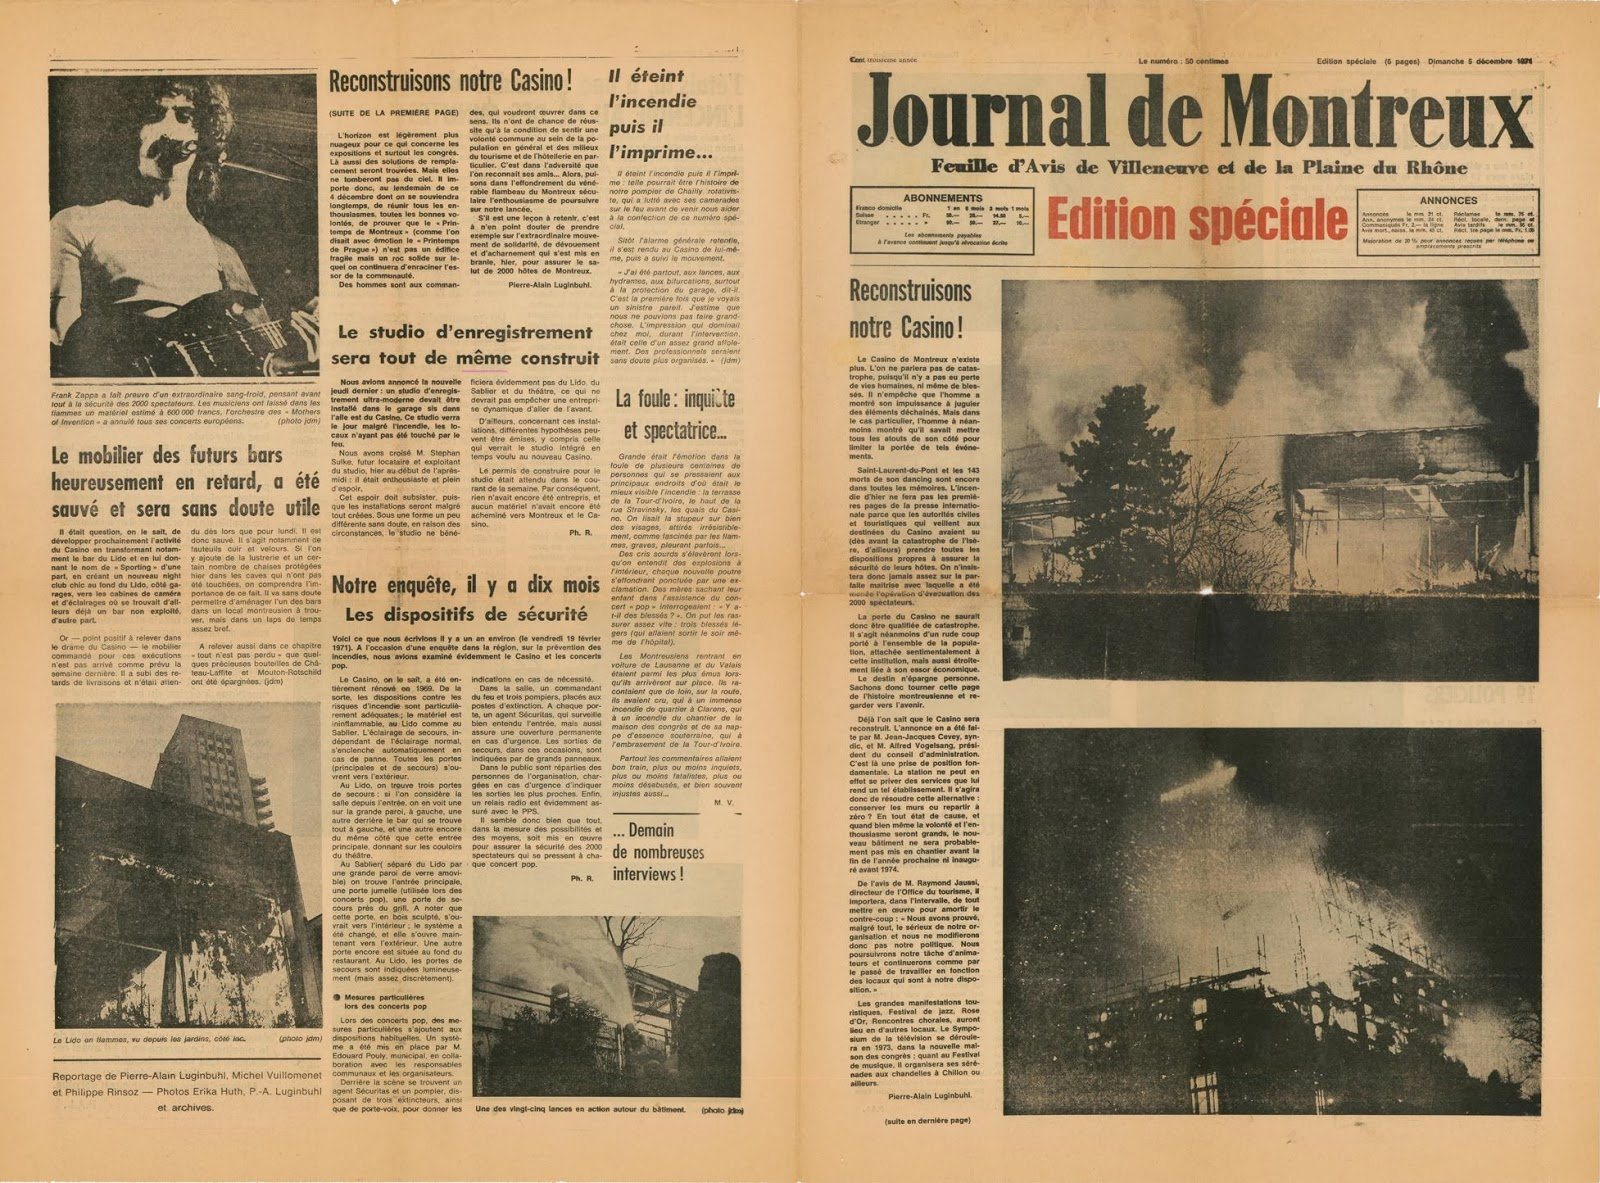 El Journal de Montreux dedicó seis páginas al incidente